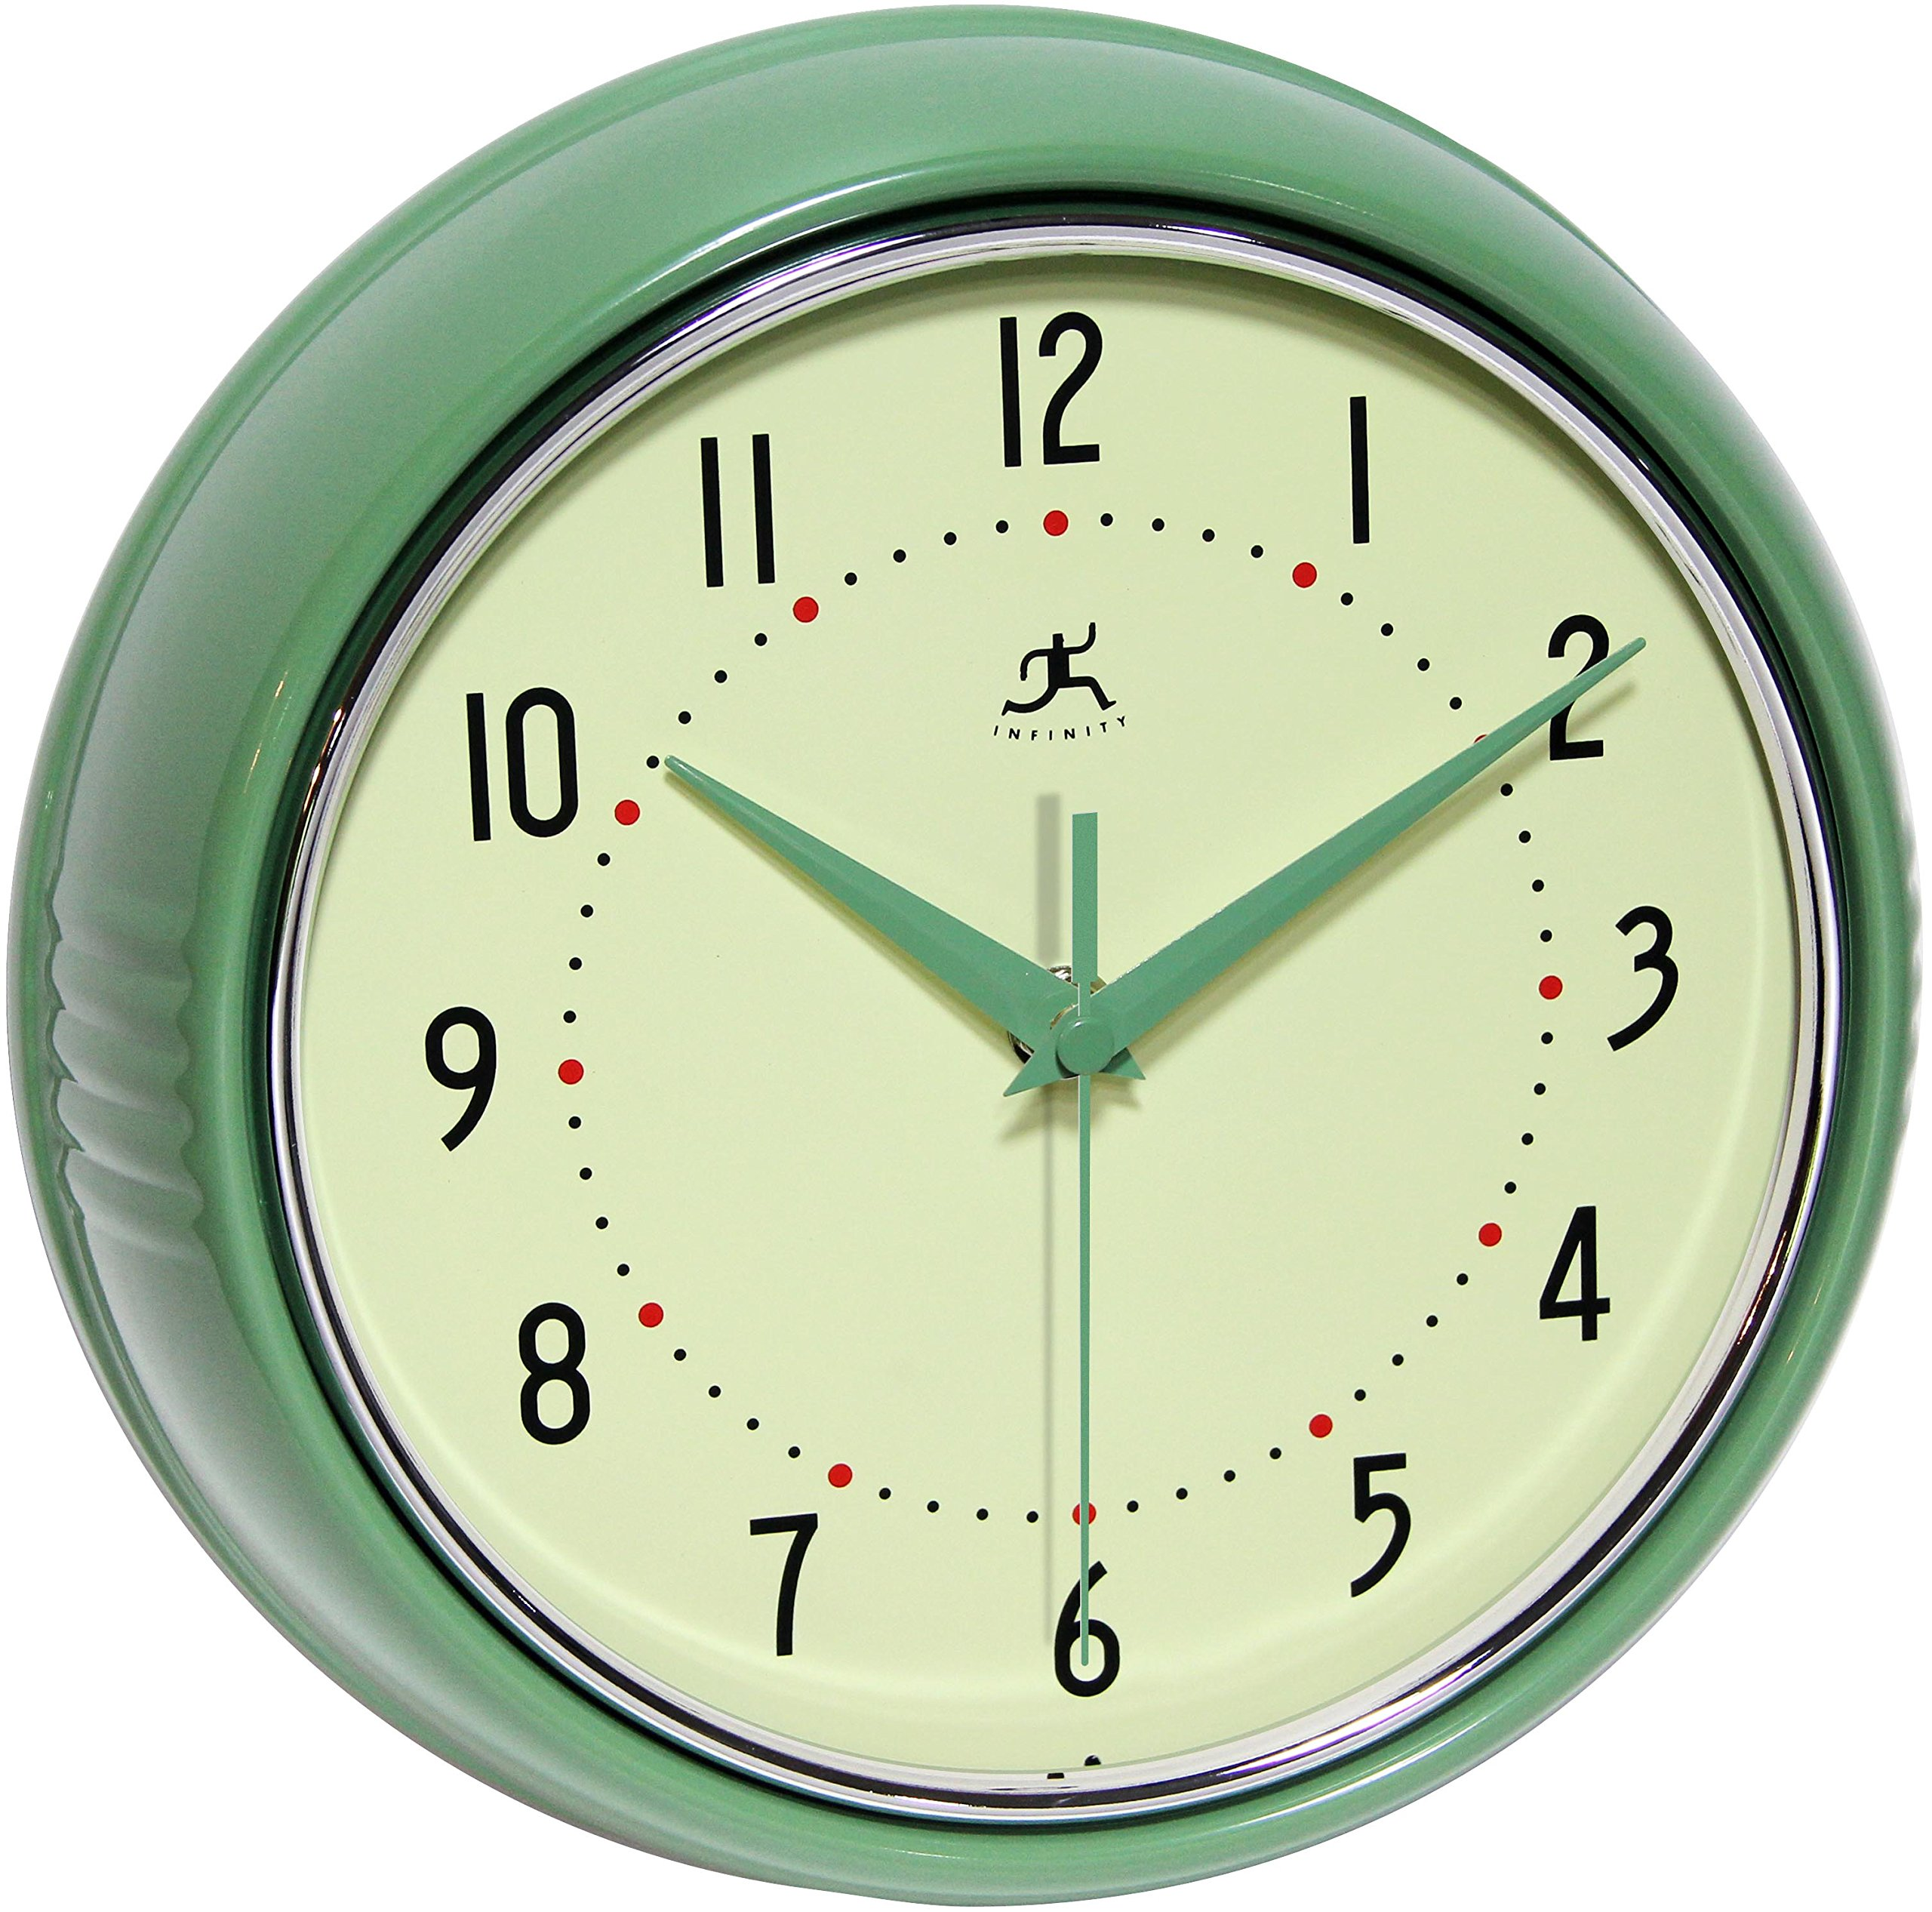 Infinity Instruments Round Green Retro Indoor Wall Clock by Infinity Instruments